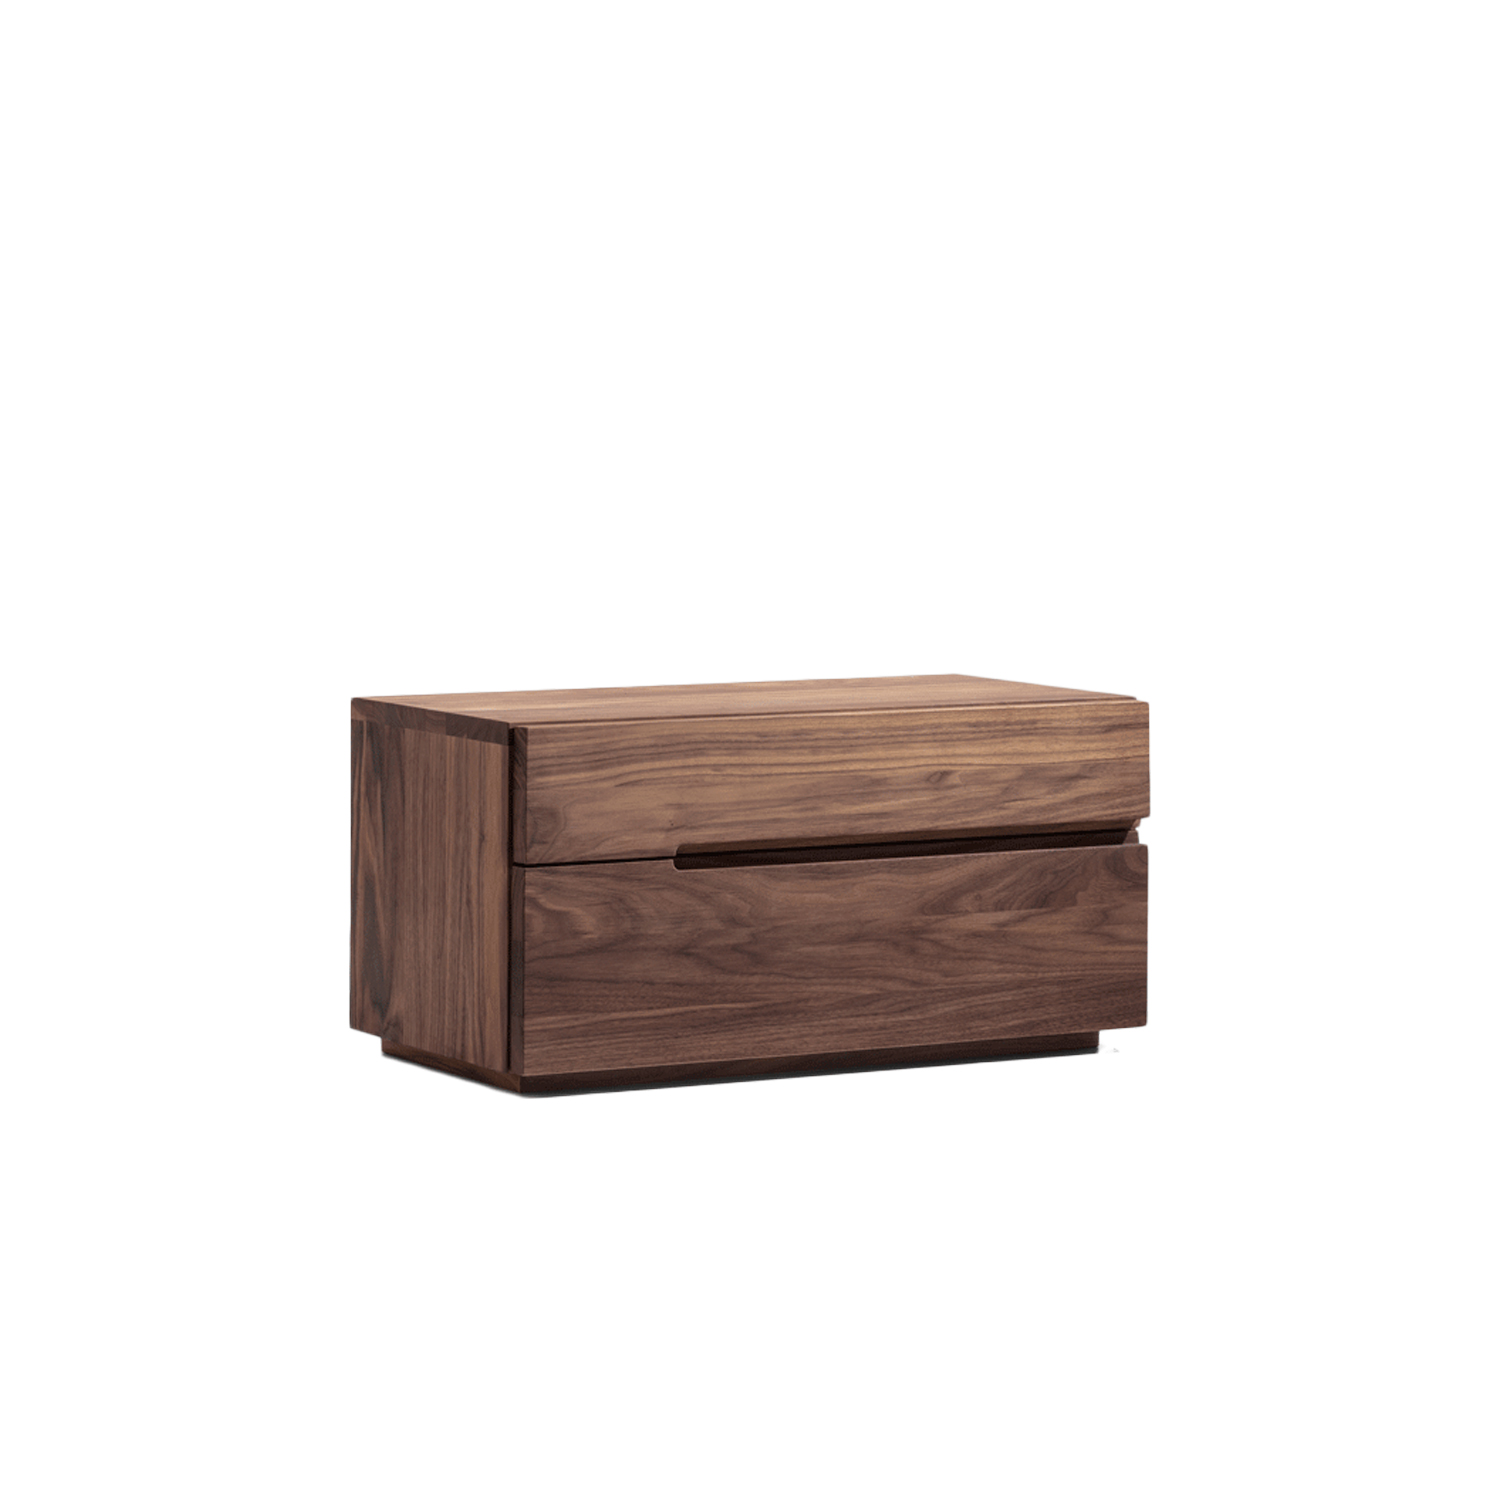 Nightstand Bedside Table - The flat cubical bedside table NIGHTSTAND with its two drawers offers ample storage options near the bed. Its unobtrusive design combines well with the beds DOZE, FRIDAY NIGHT, FUSION, SNOOZE, all SIMPLE-beds, IN HEAVEN, MELLOW and GRAND MELLOW.  The nightstand bedside table is available in white oiled ash, oiled oak, oiled knotty oak, colour stained oak, oiled American cherry, oiled American walnut and oiled European walnut.   The drawer is comb jointed and has partly extendable runners, and solid hornbeam is used for the interior parts.   Comfort height(H40 cm) is available at an additional charge upon request.  For colour stained oak options, please refer to the catalogue.  | Matter of Stuff